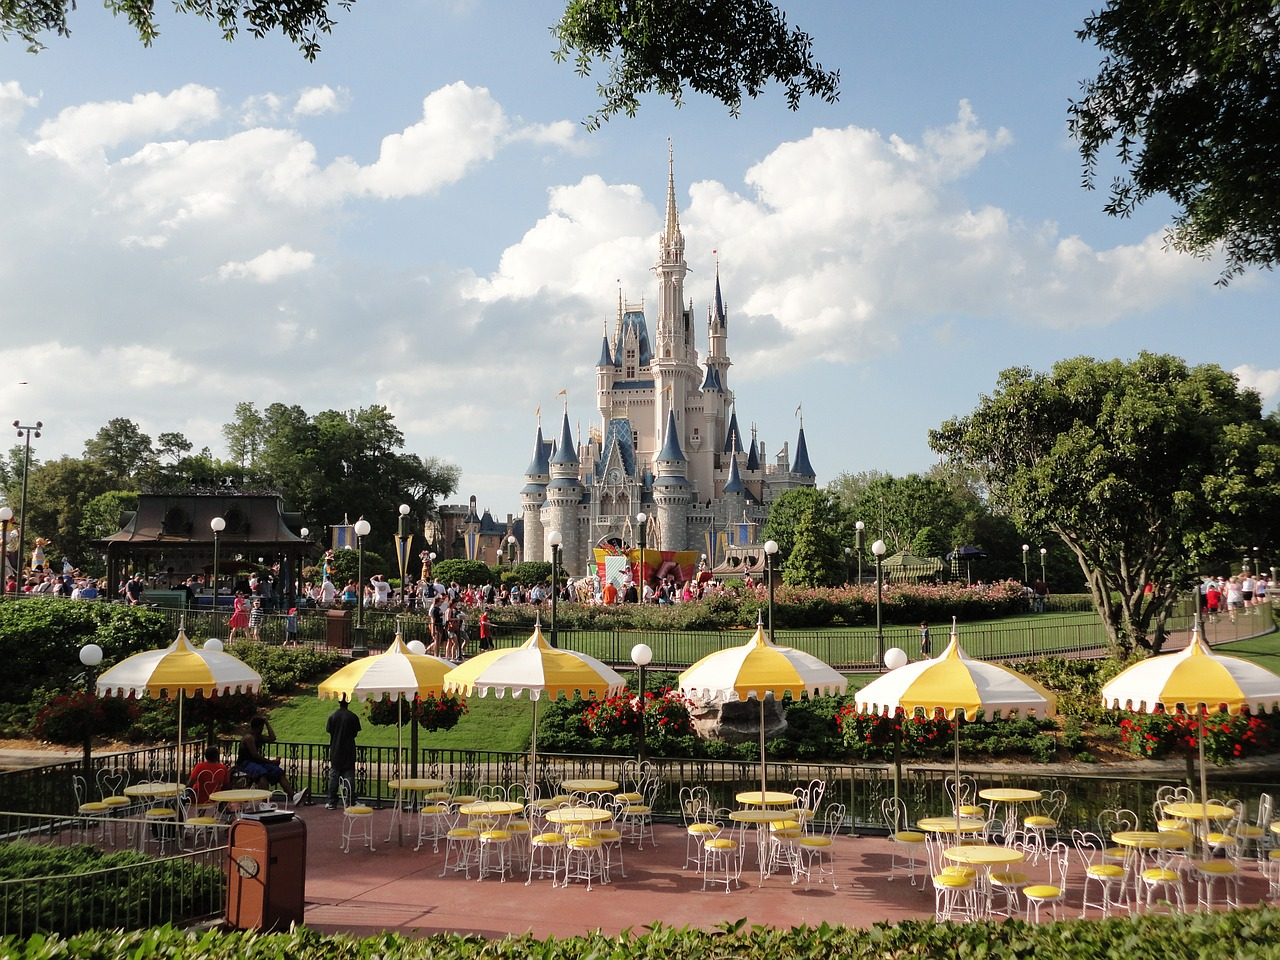 Going to Disney World alone, as an adult, is it weird?